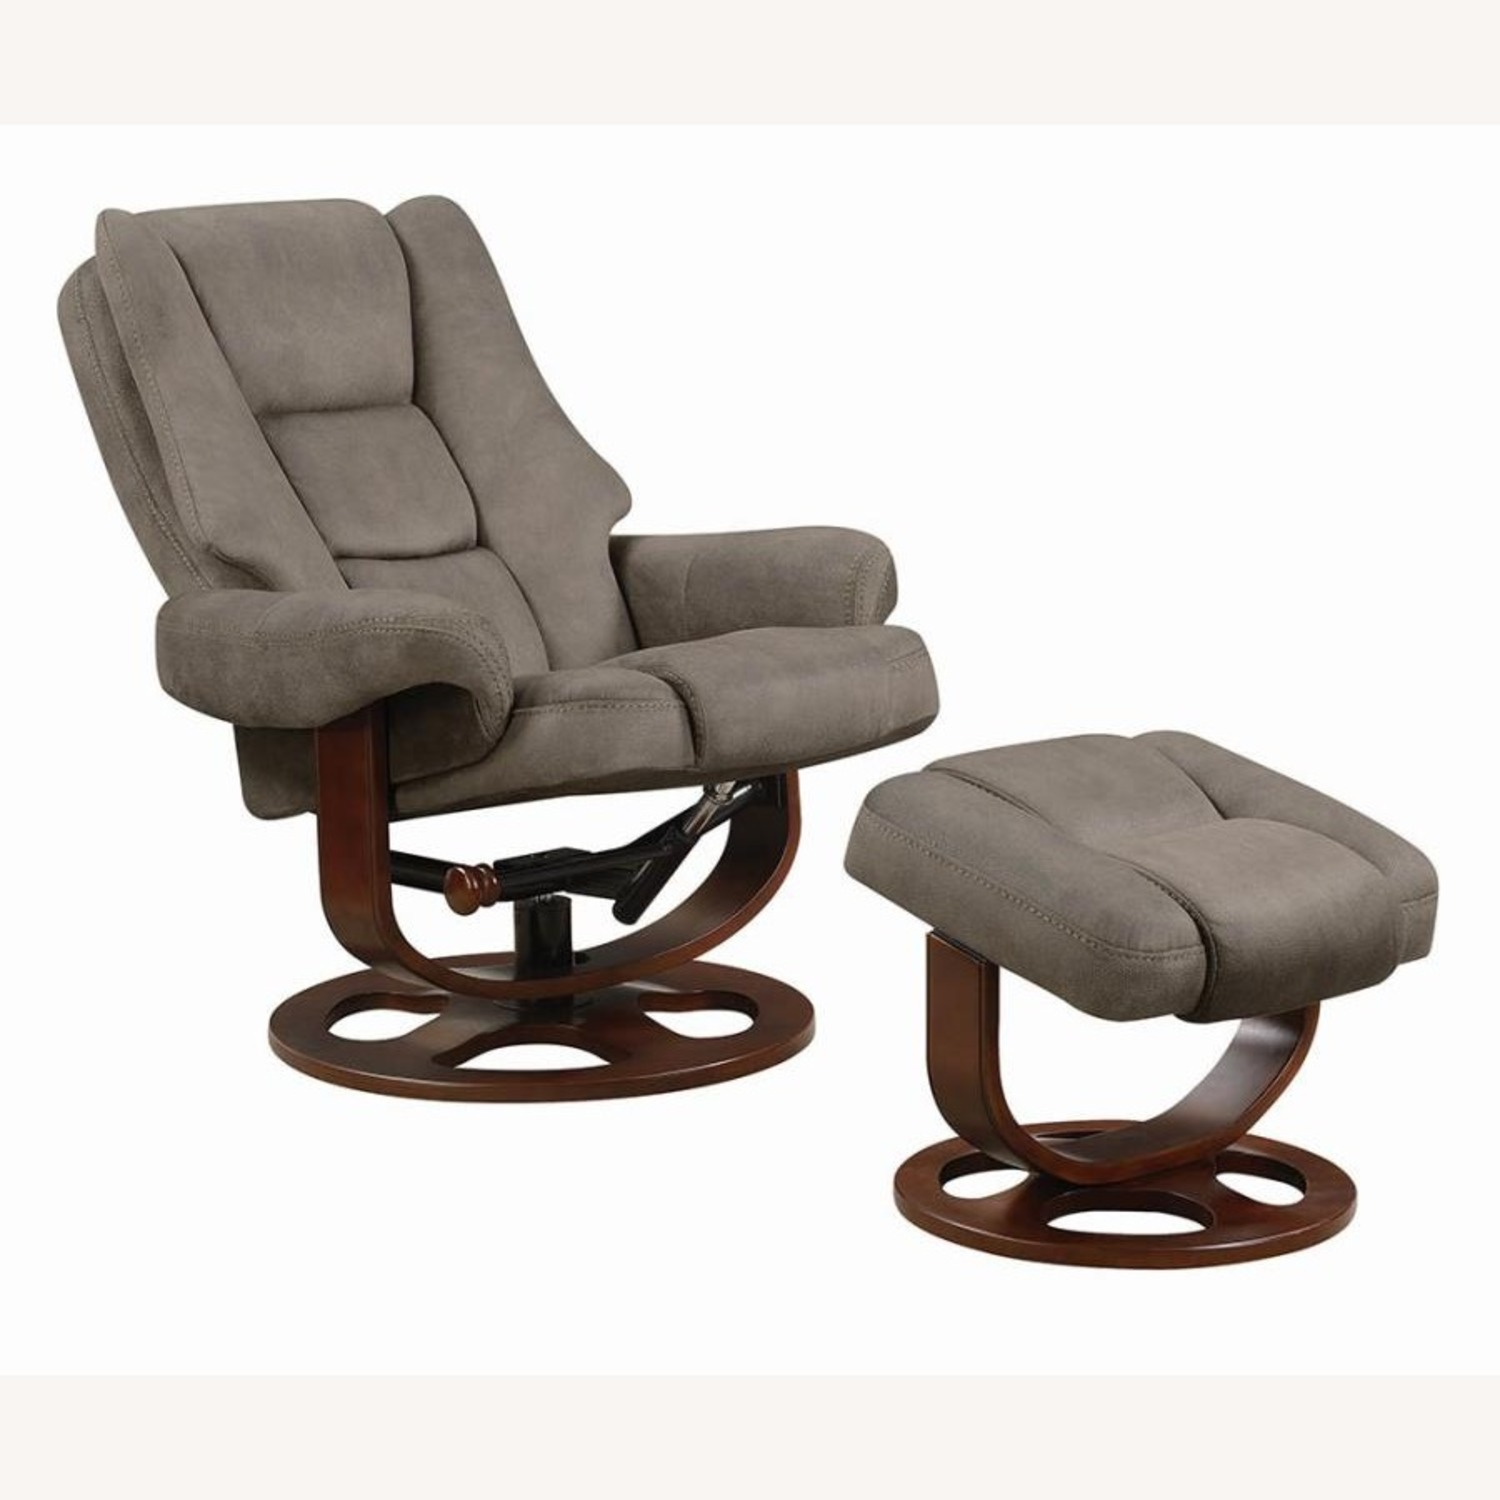 Recliner W/ Ottoman In 2-Tone Grey Faux Suede - image-3